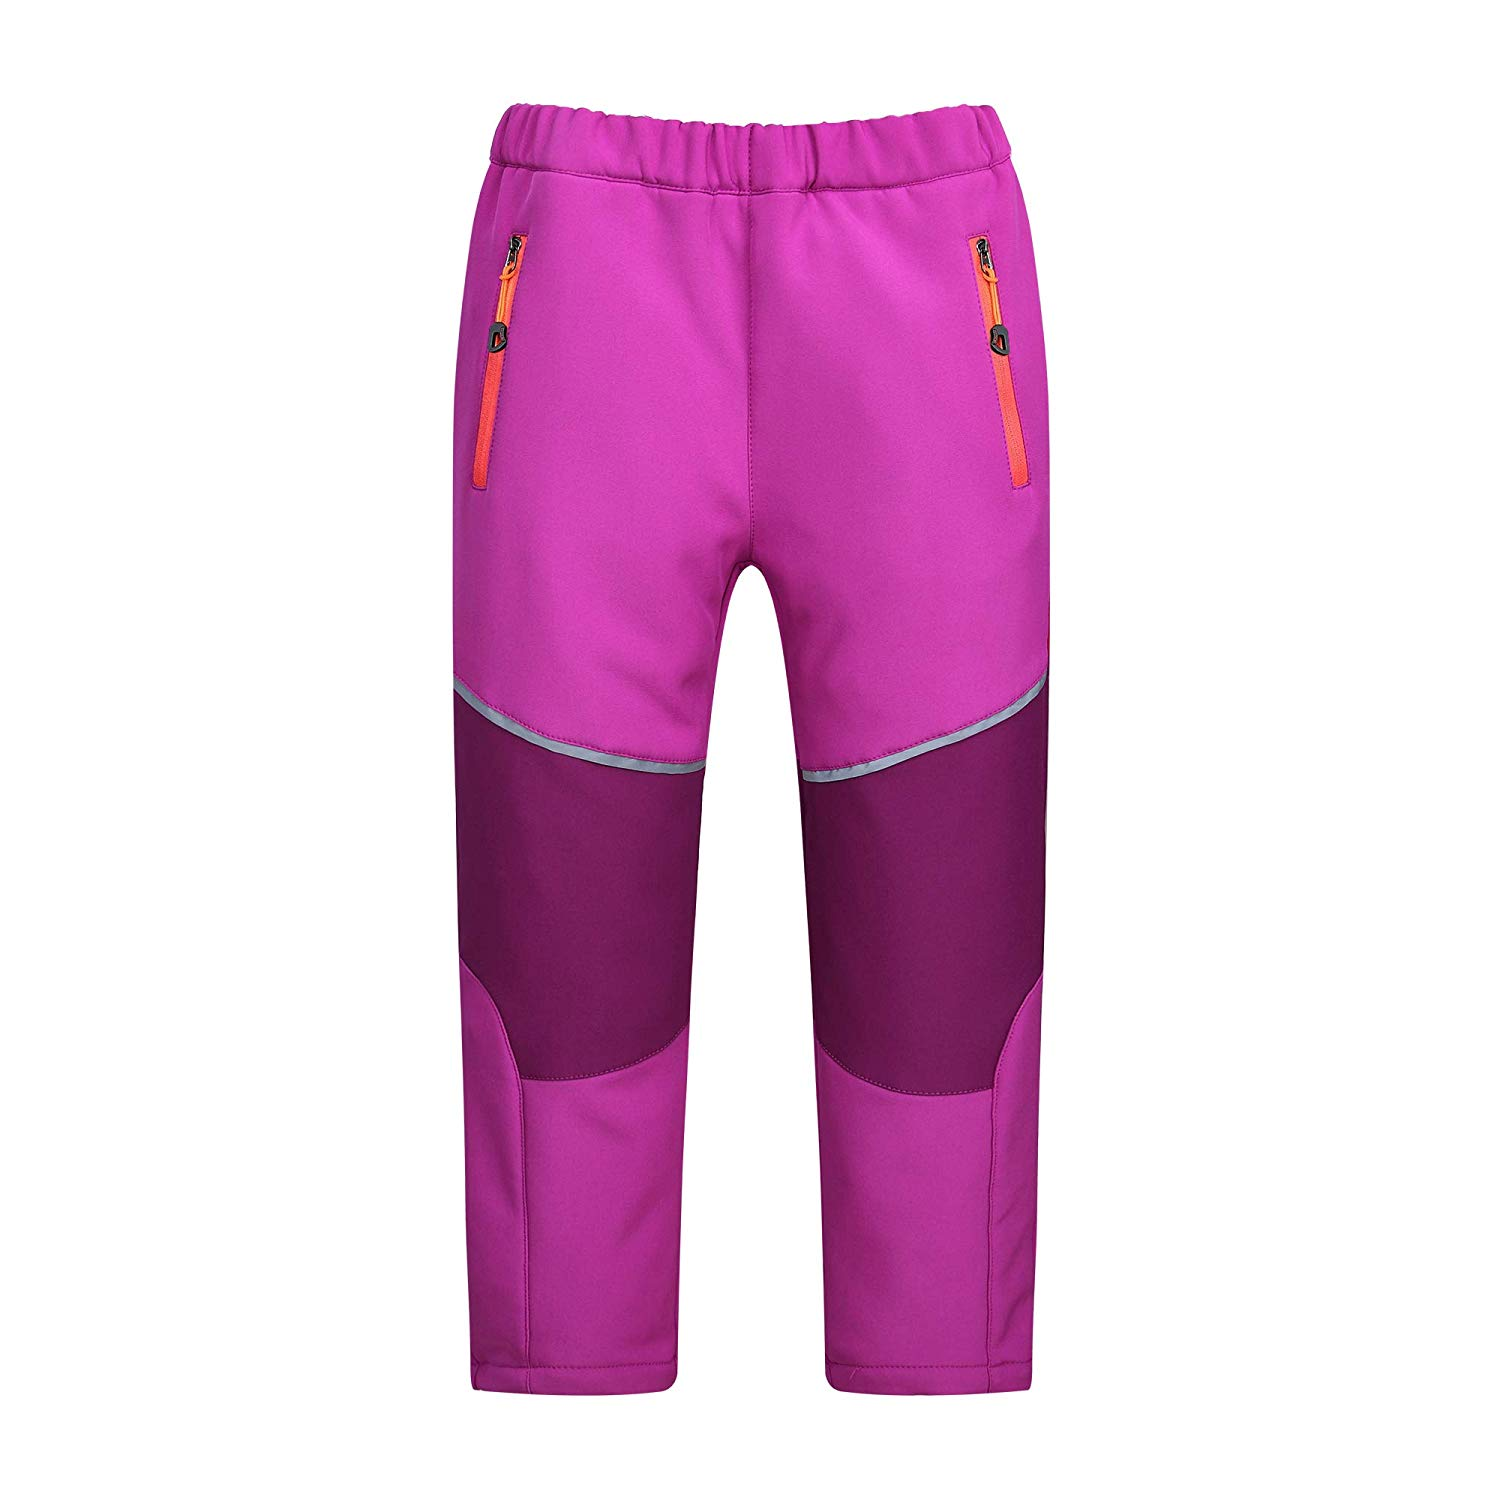 cc7b9cbcd2 Get Quotations · SEEU Kids s Fleece Lined Soft Shell Pants Great for  Snowboarding